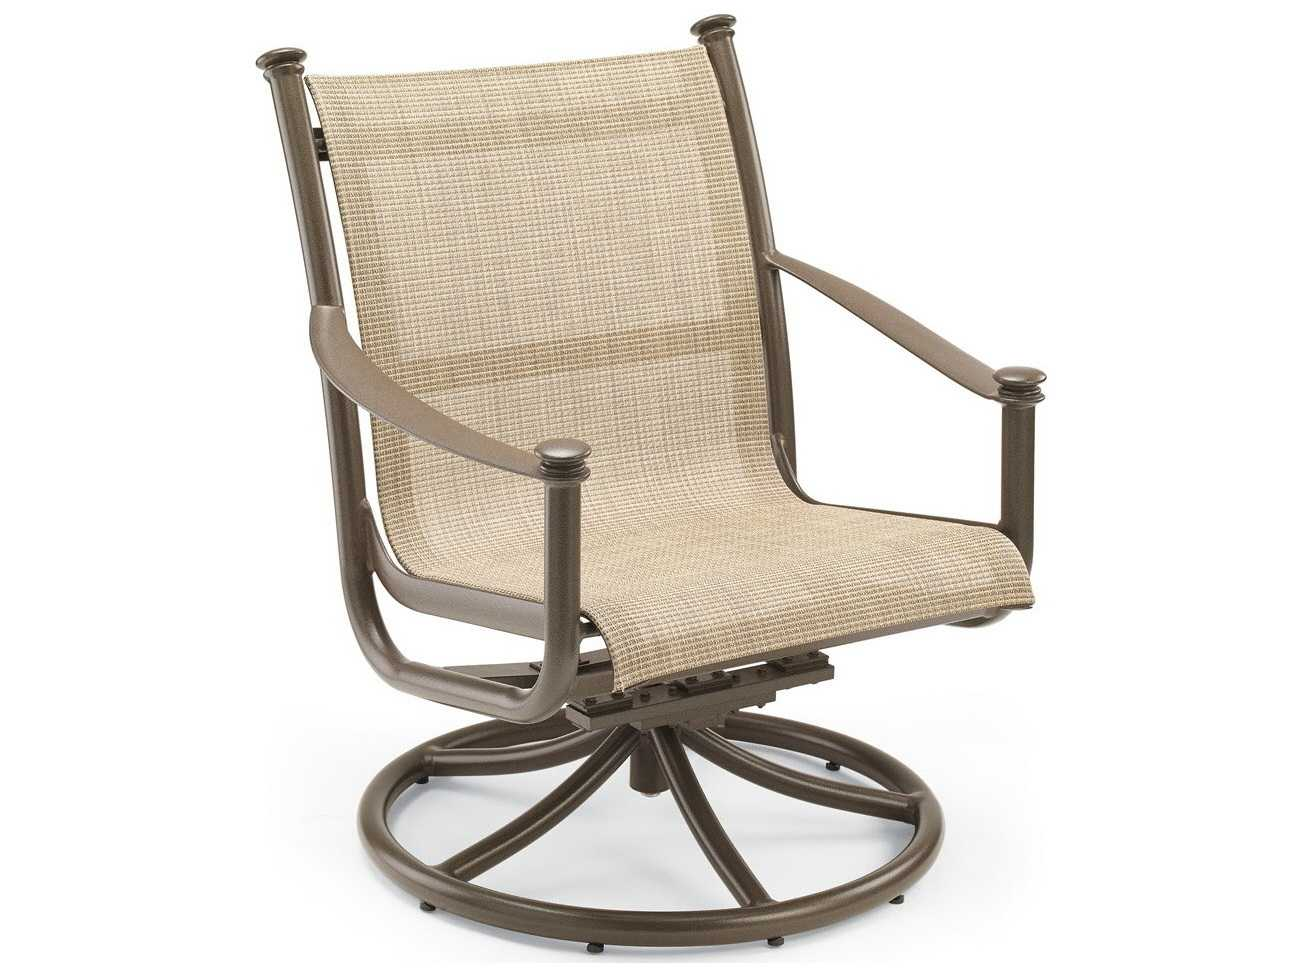 Winston Palazzo Sling Cast Aluminum Arm Chaise Lounge: Winston Catania Sling Aluminum Swivel Tilt Chat Chair